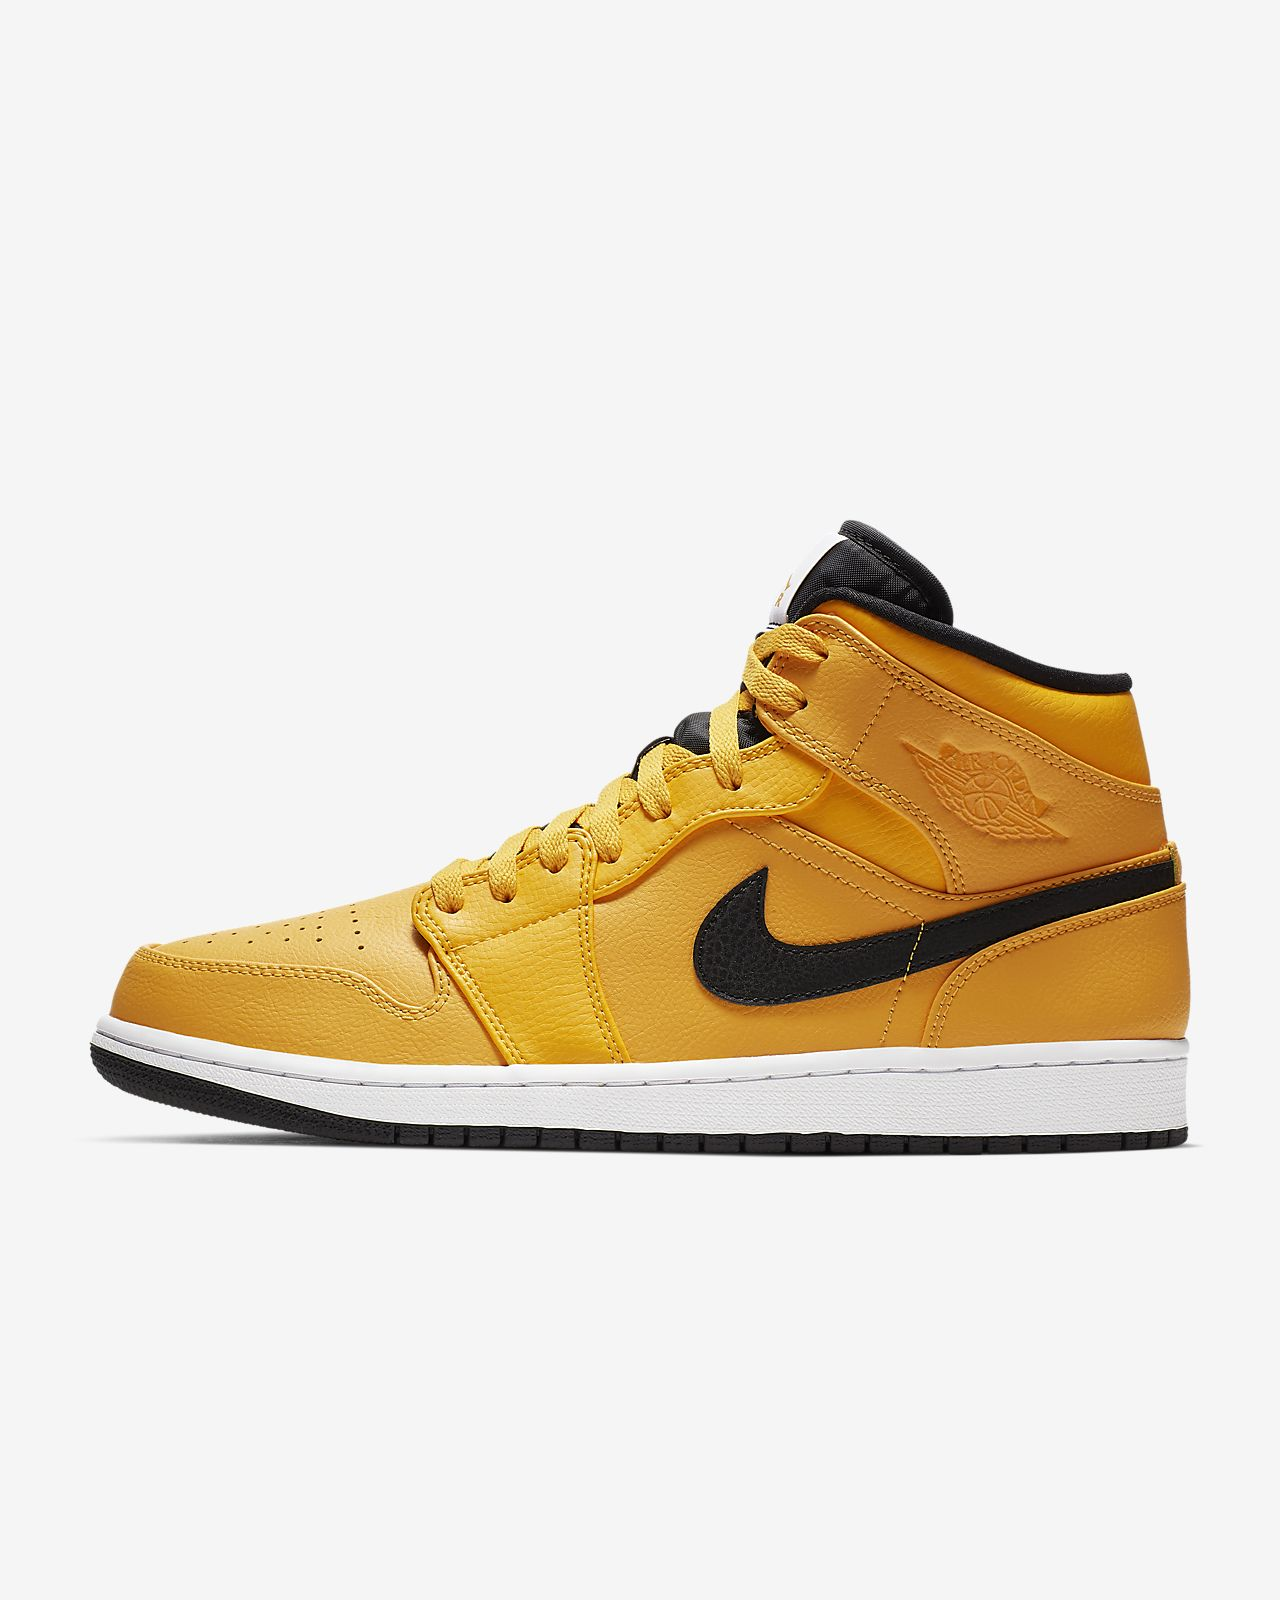 5c06c7b12fc8 Air Jordan 1 Mid Men s Shoe. Nike.com